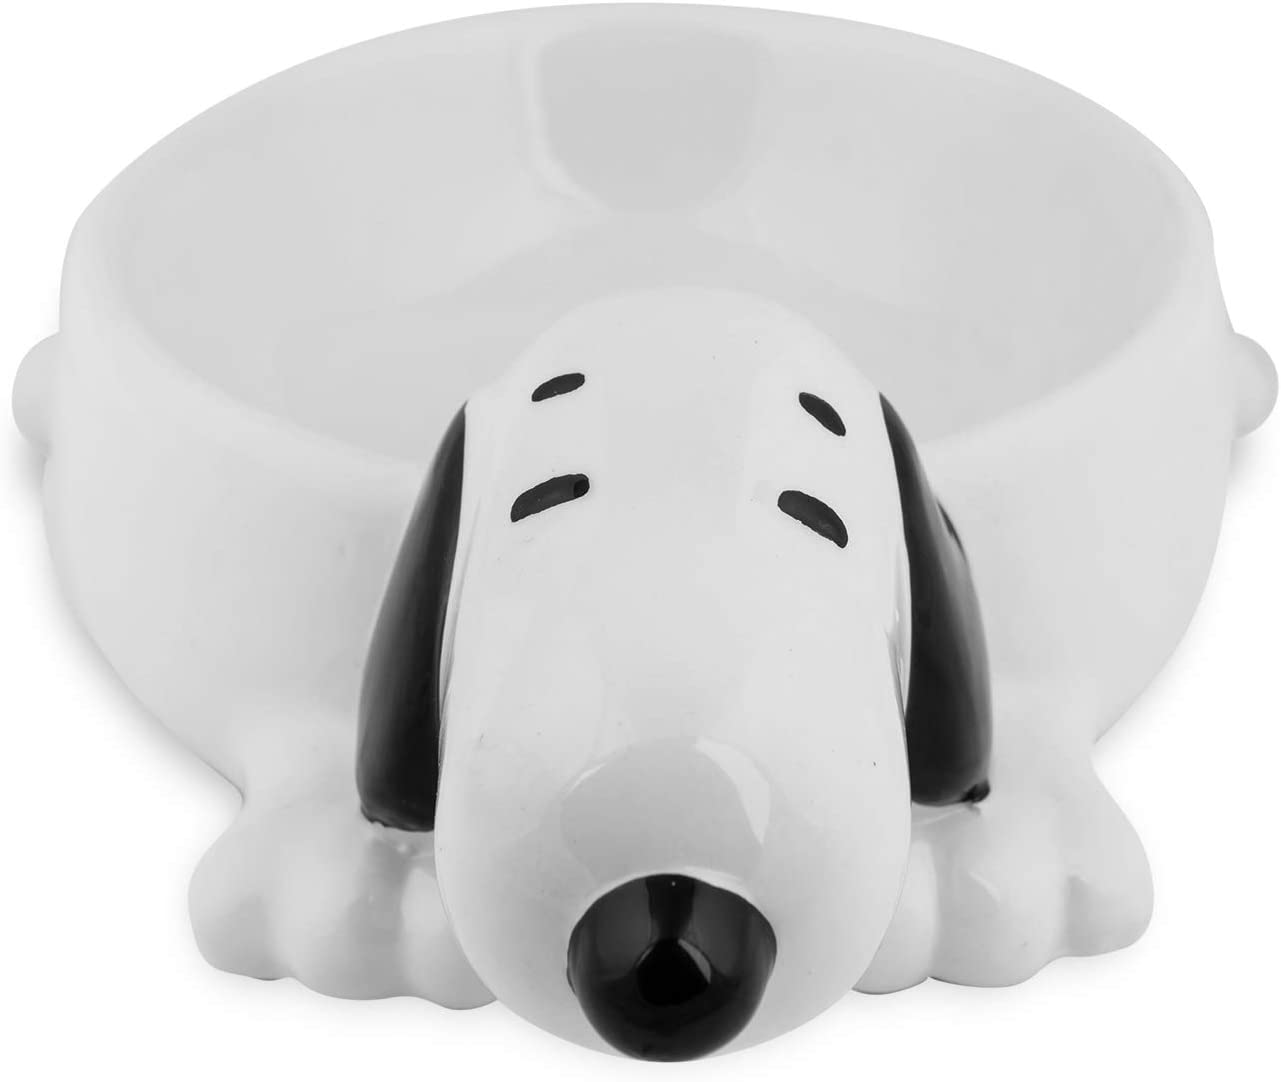 ZOOZ PETS Snoopy 3D Ceramic Dog Bowl for Food & Water- No Spill Dog Water Bowl and Food Bowls and Exclusive Snoopy Design Weighted Dog Bowl - Cat Bowls Ceramic